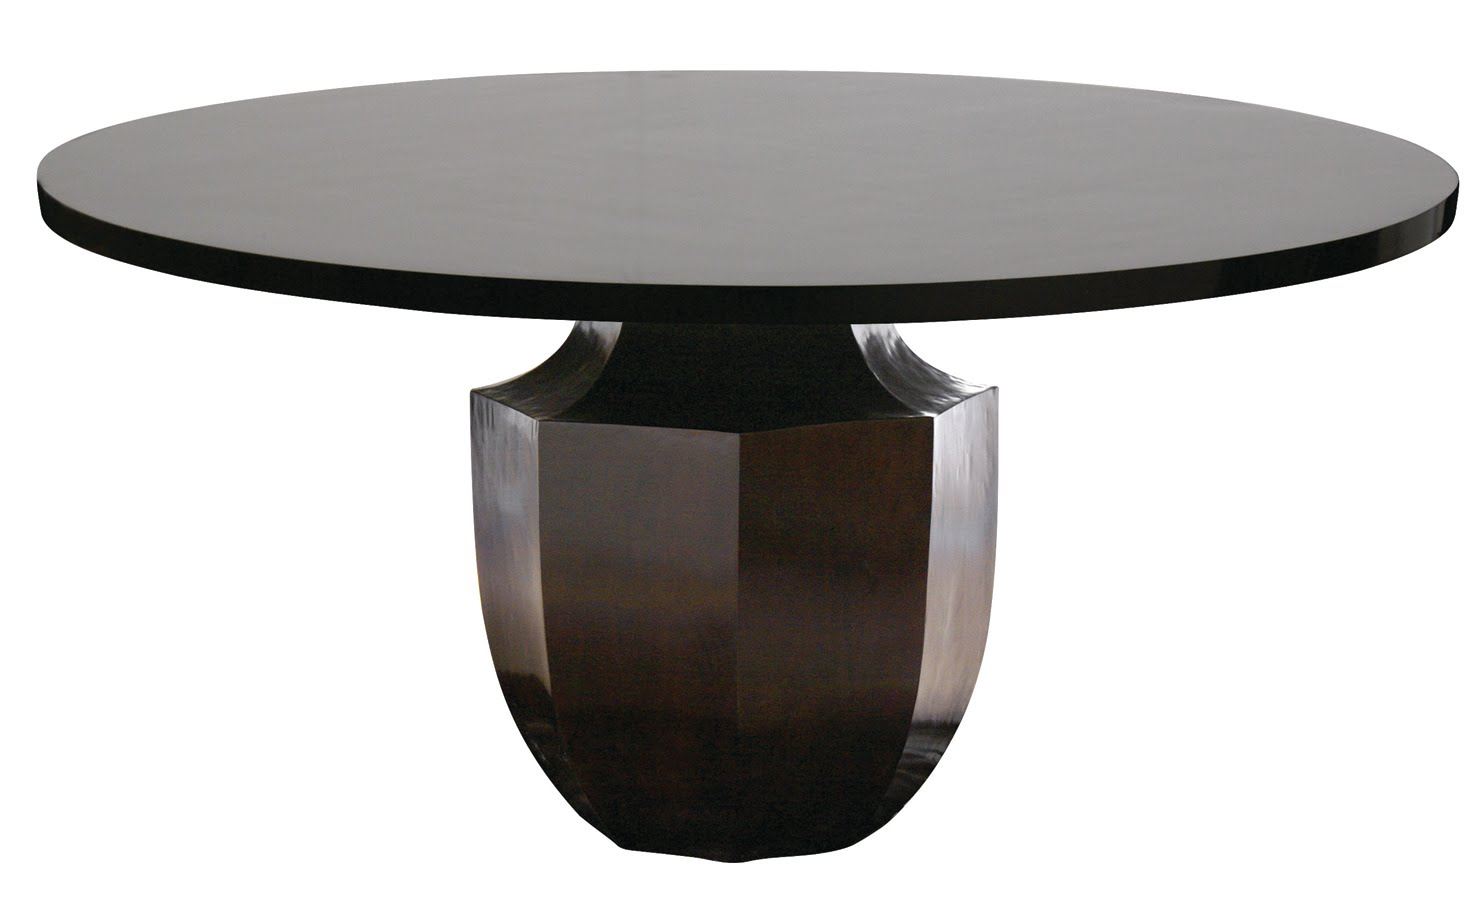 Magnificent Round Dining Table 1471 x 900 · 63 kB · jpeg